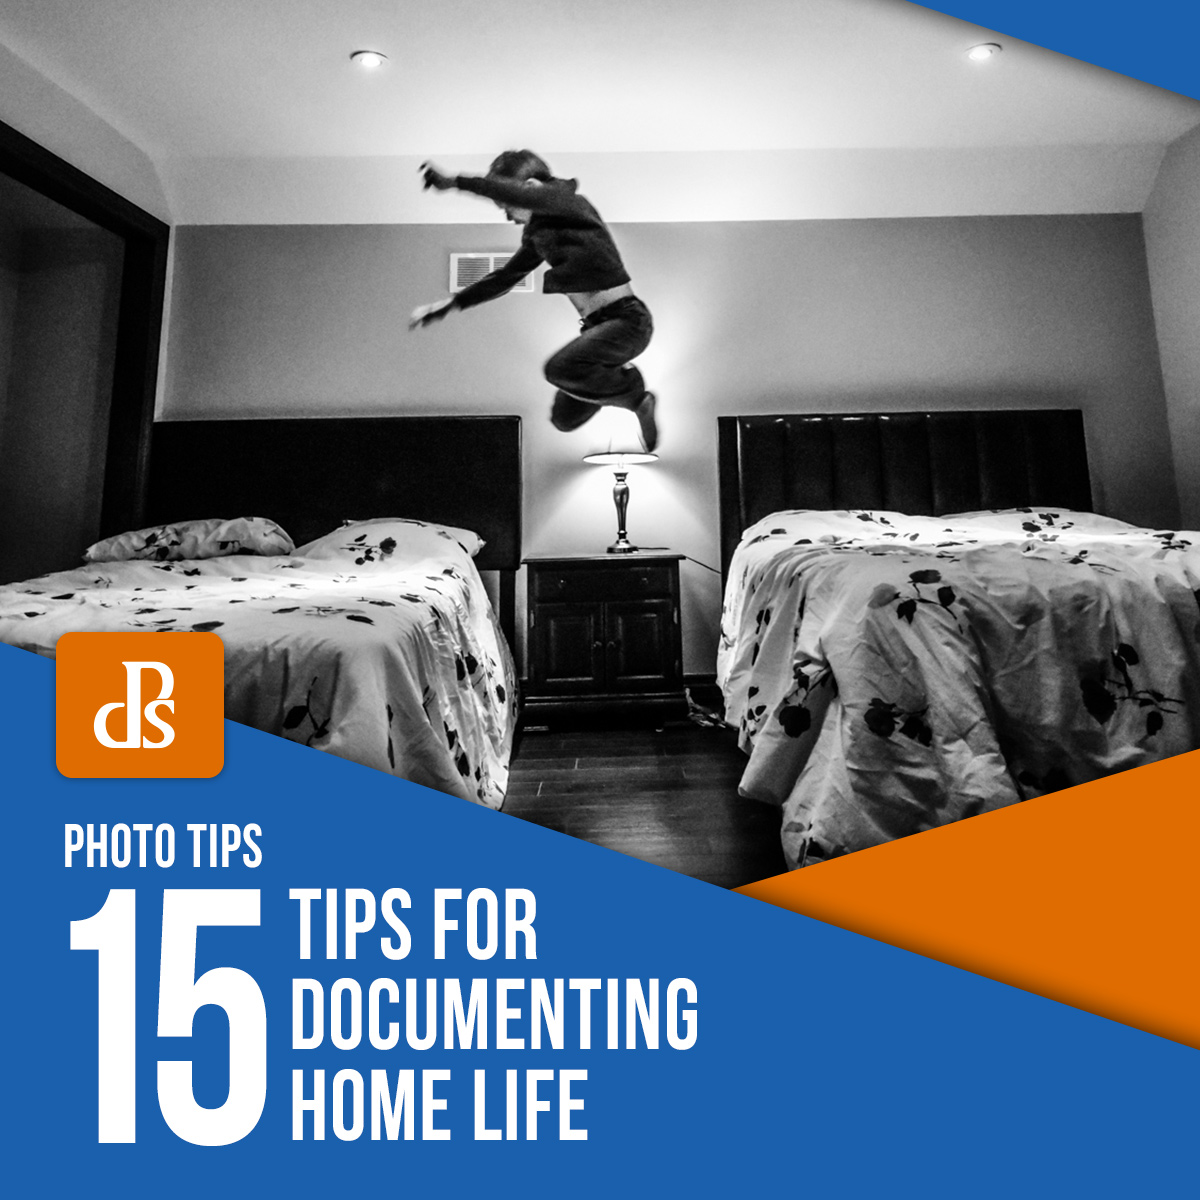 Tips for documenting home life through photography